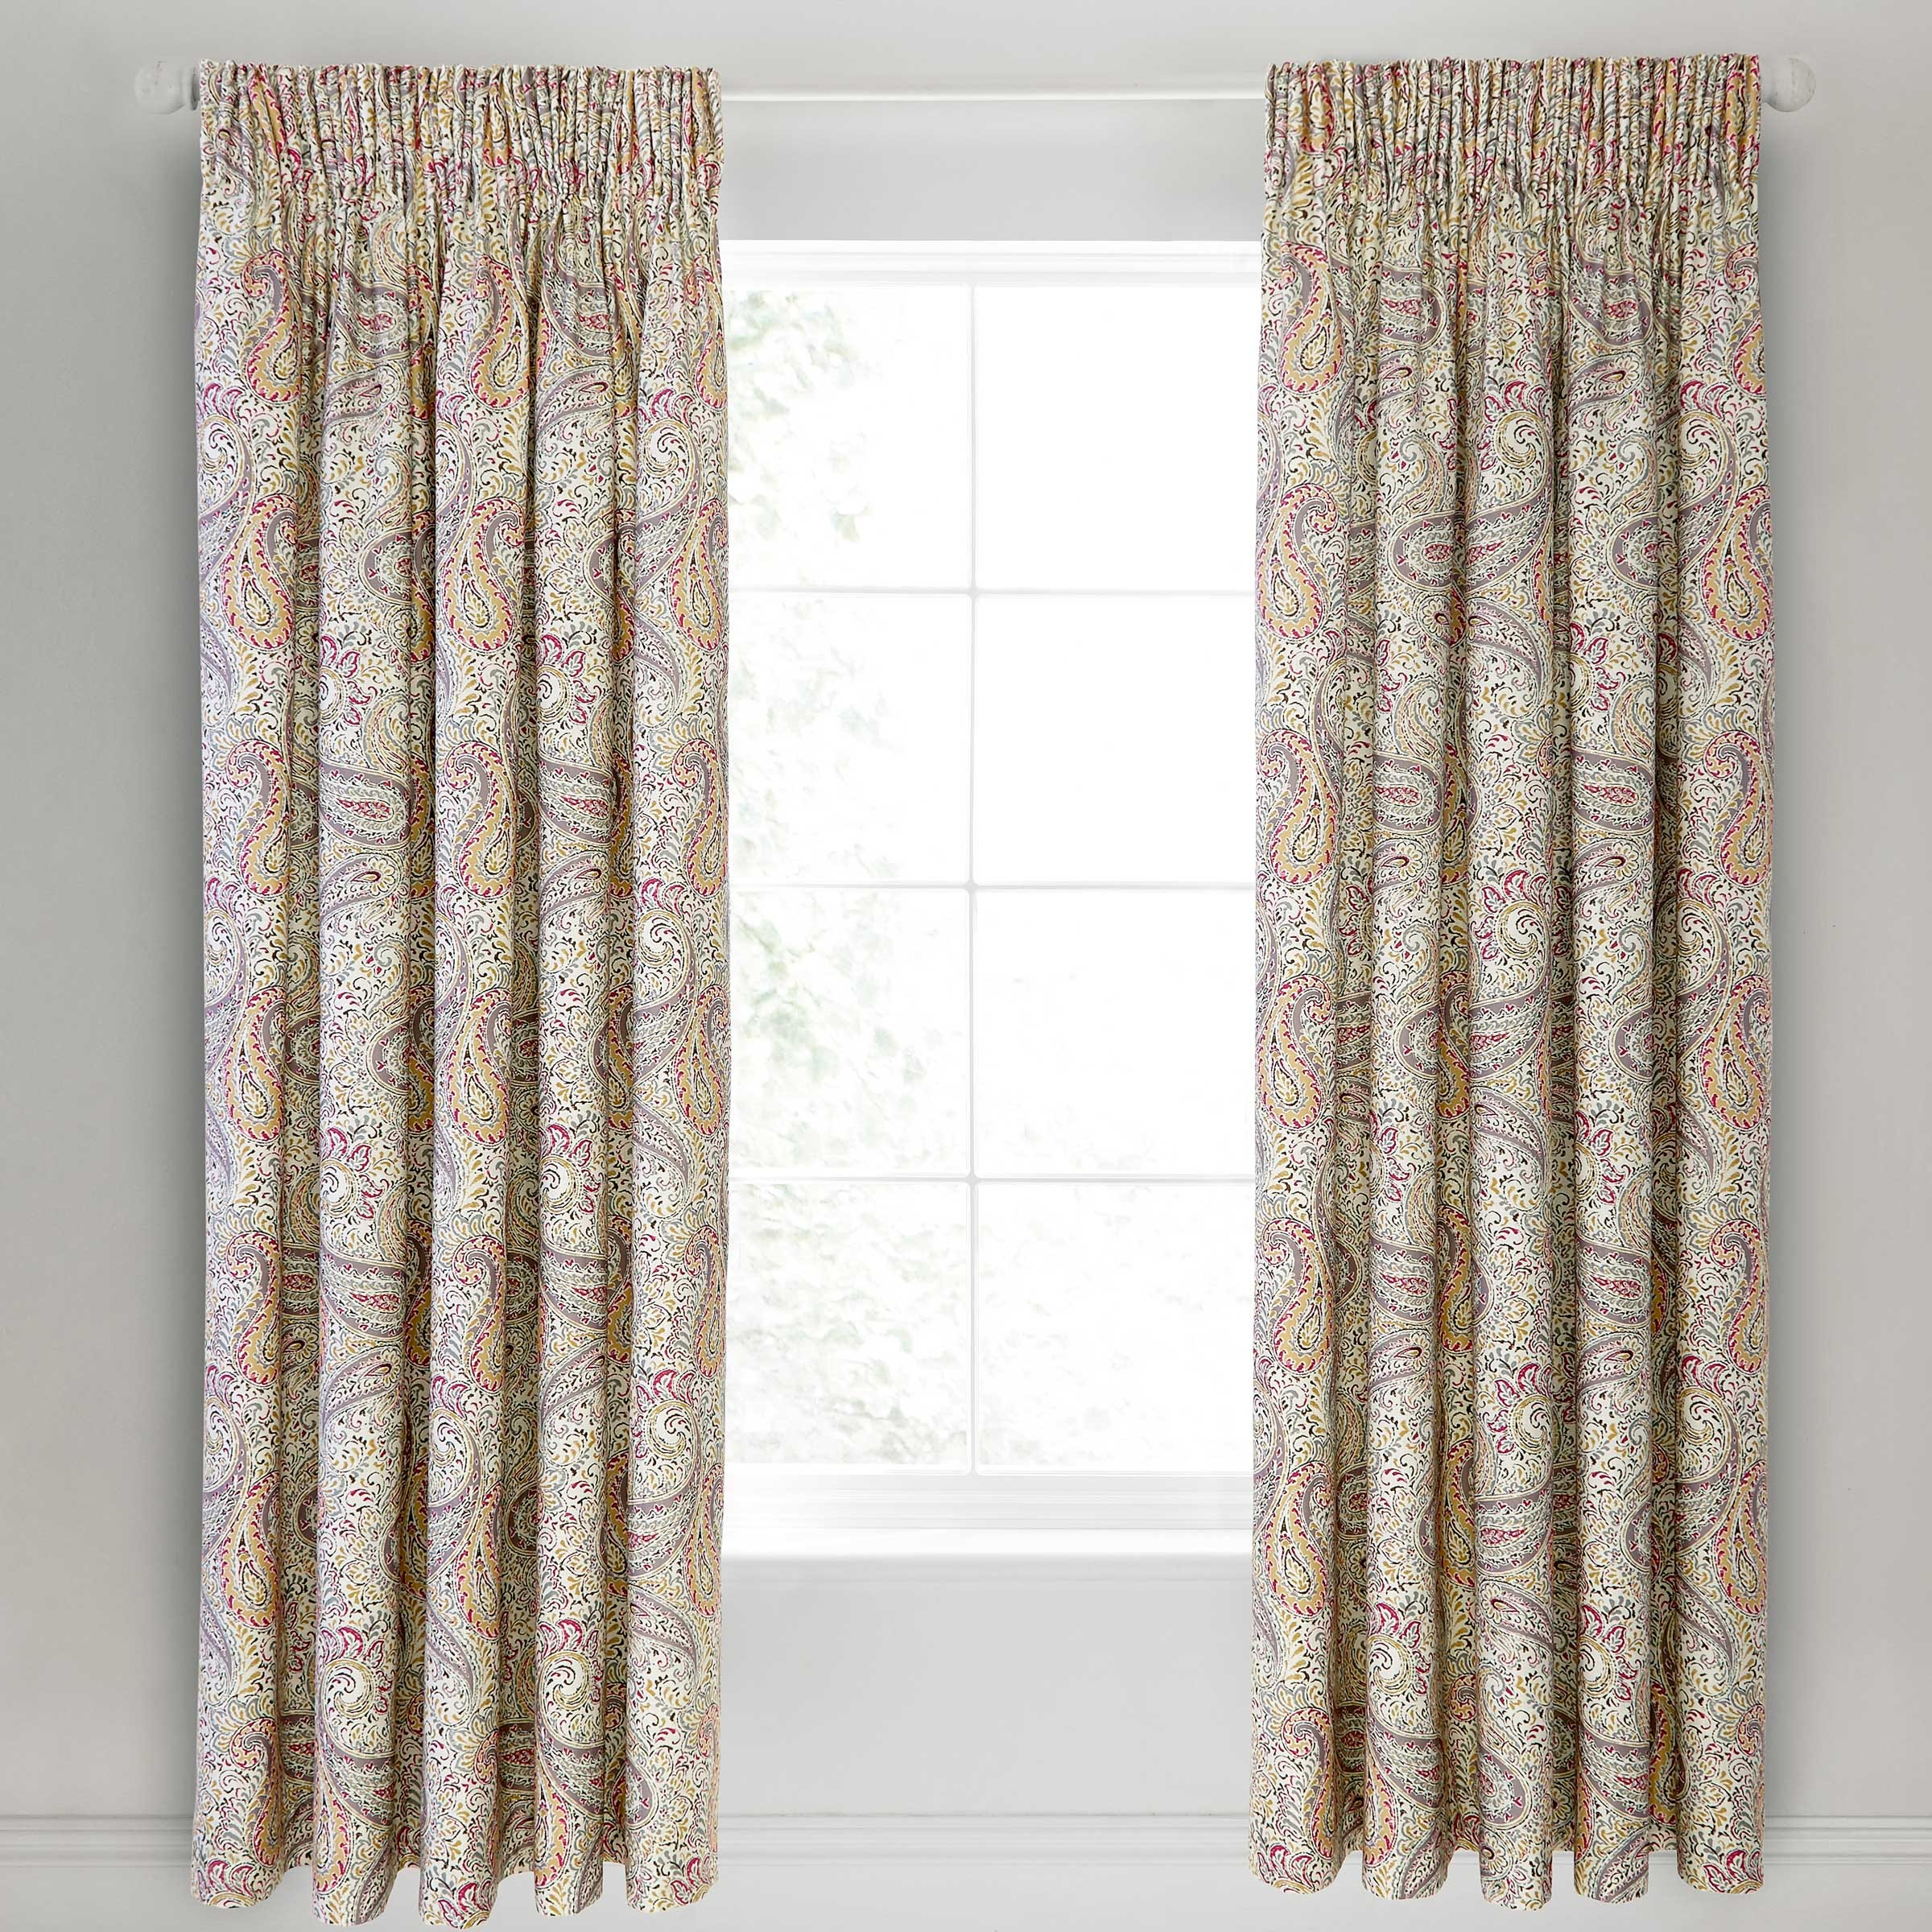 Bedeck 1951 Damara Lined Curtains 66x72 , Magenta